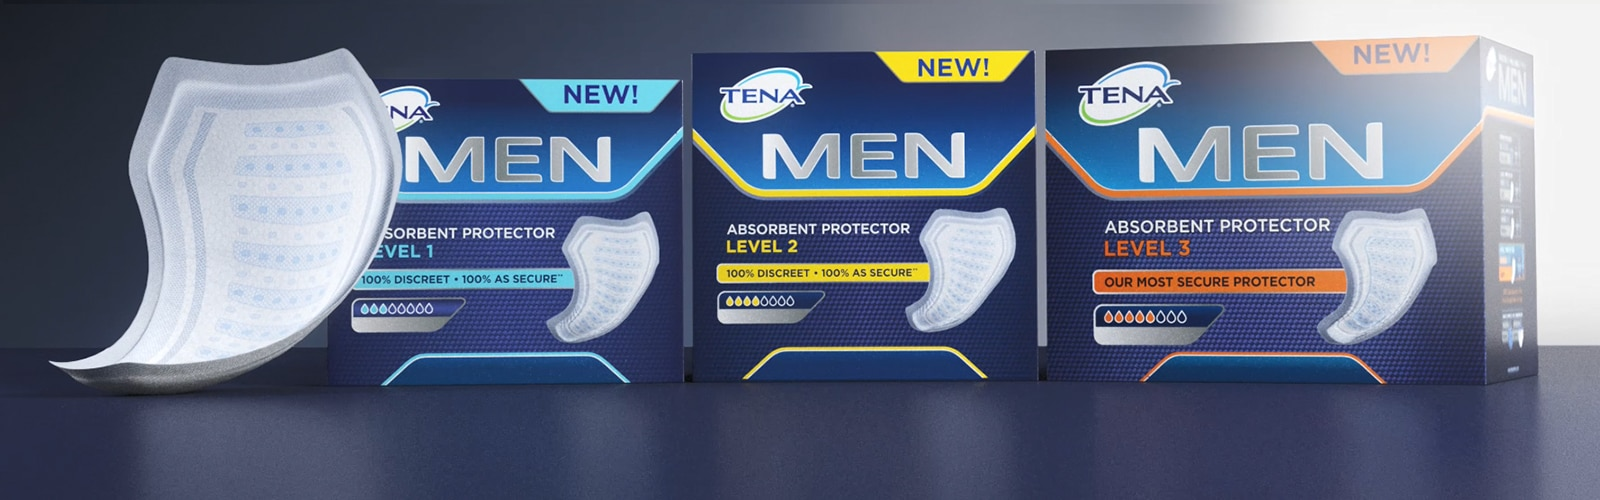 TENA Men Absorbent Protector product video  - trusted pads for men with urine leakage